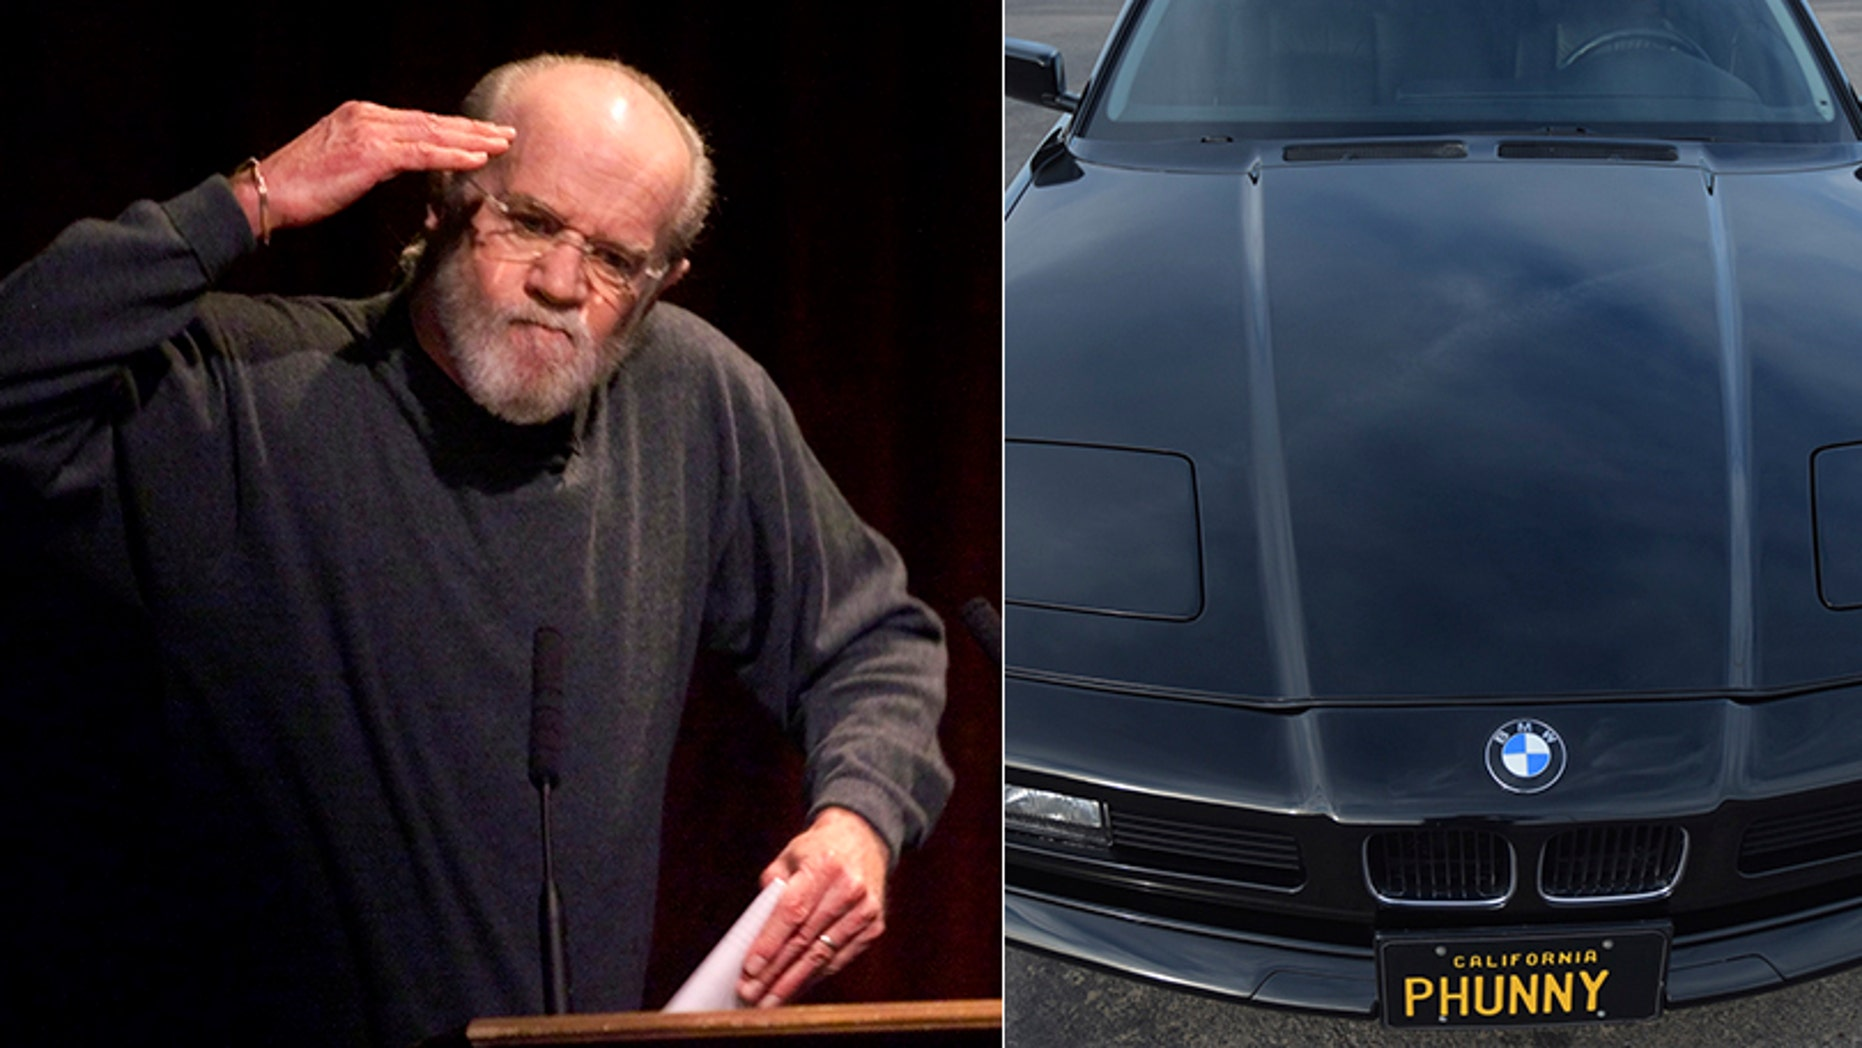 According to the listing, Carlin drove the 1996 BMW 850Ci from new until his death in 2008 and left it to his daughter Kelly.